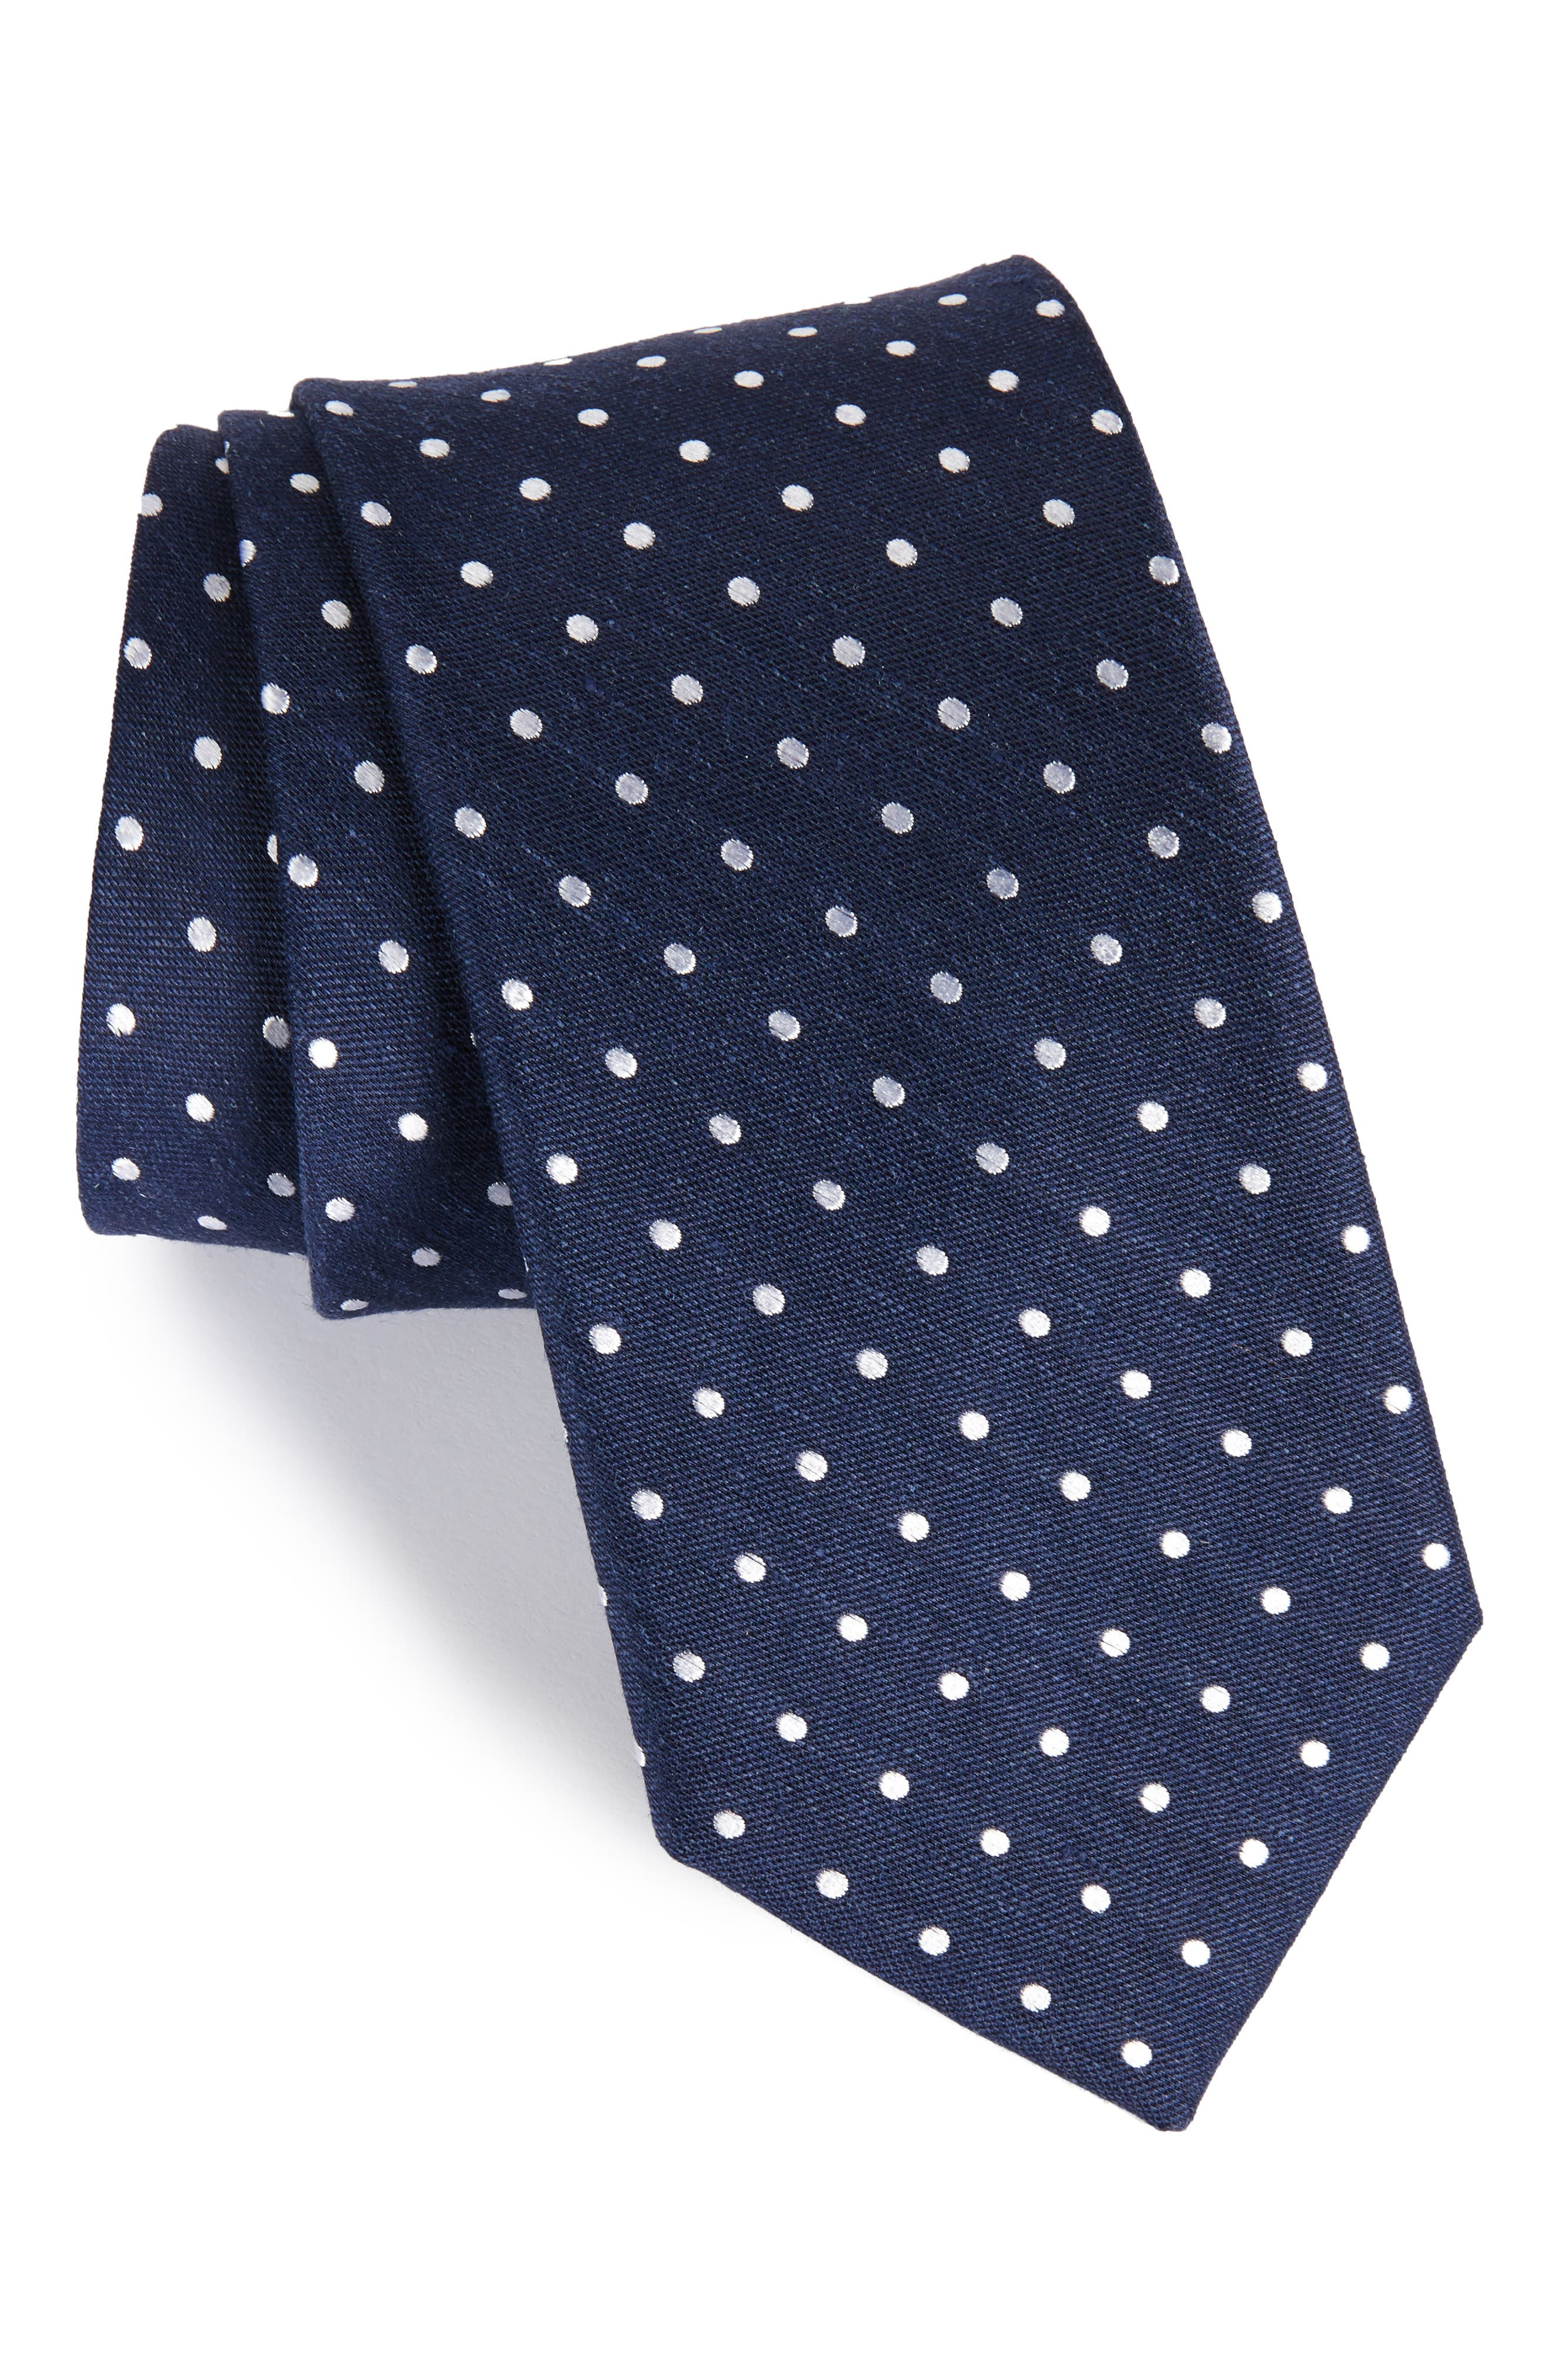 The Tie Bar Dotted Dots Silk & Linen Tie